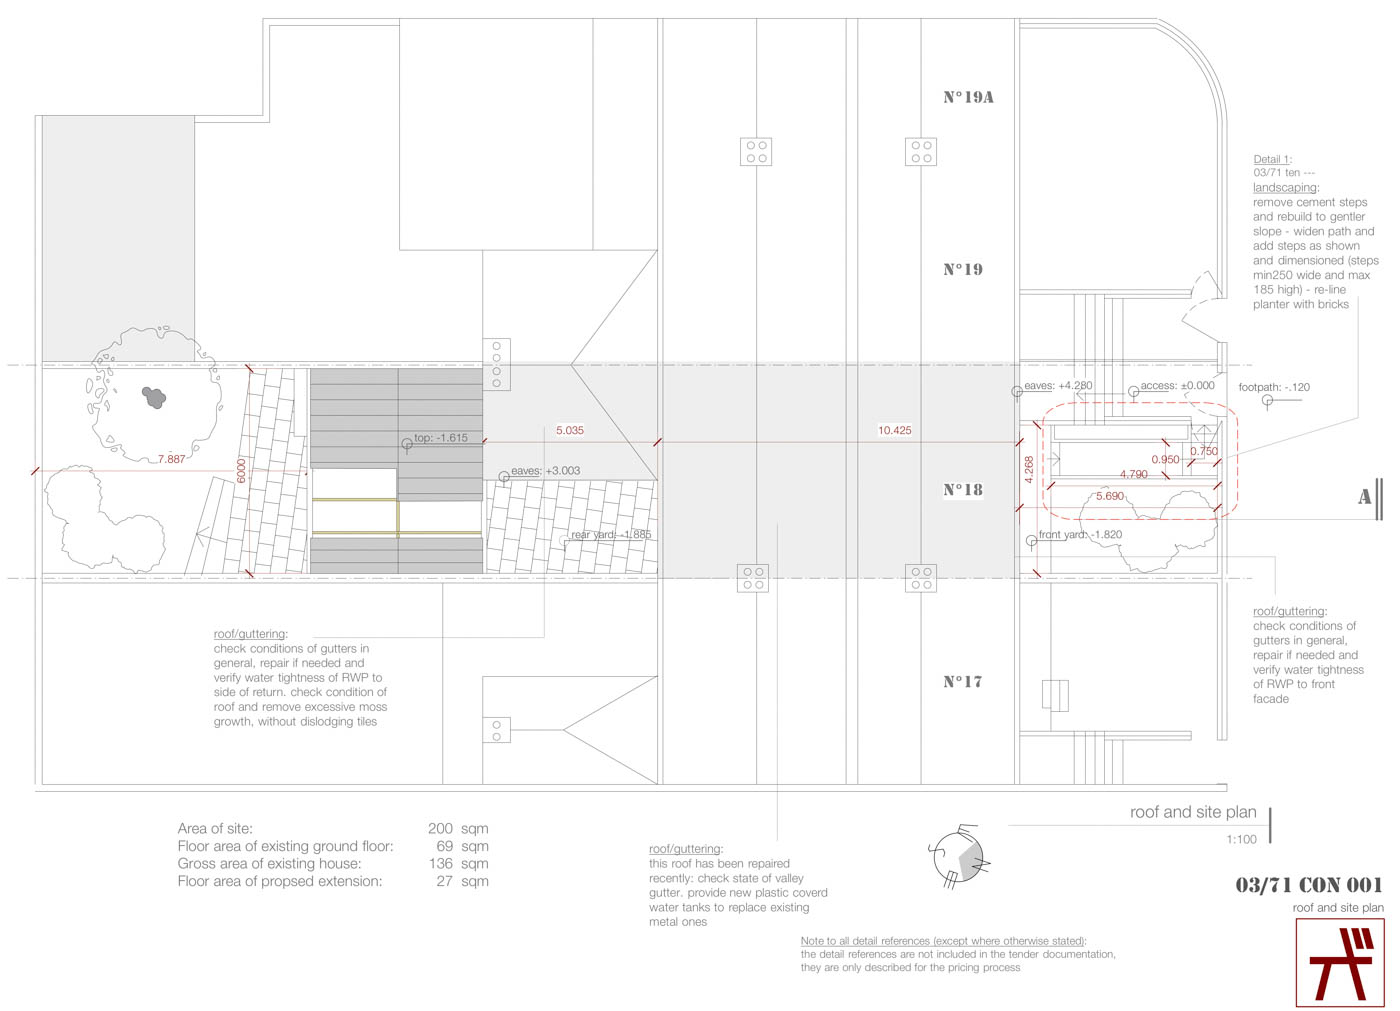 18-roof and site plan